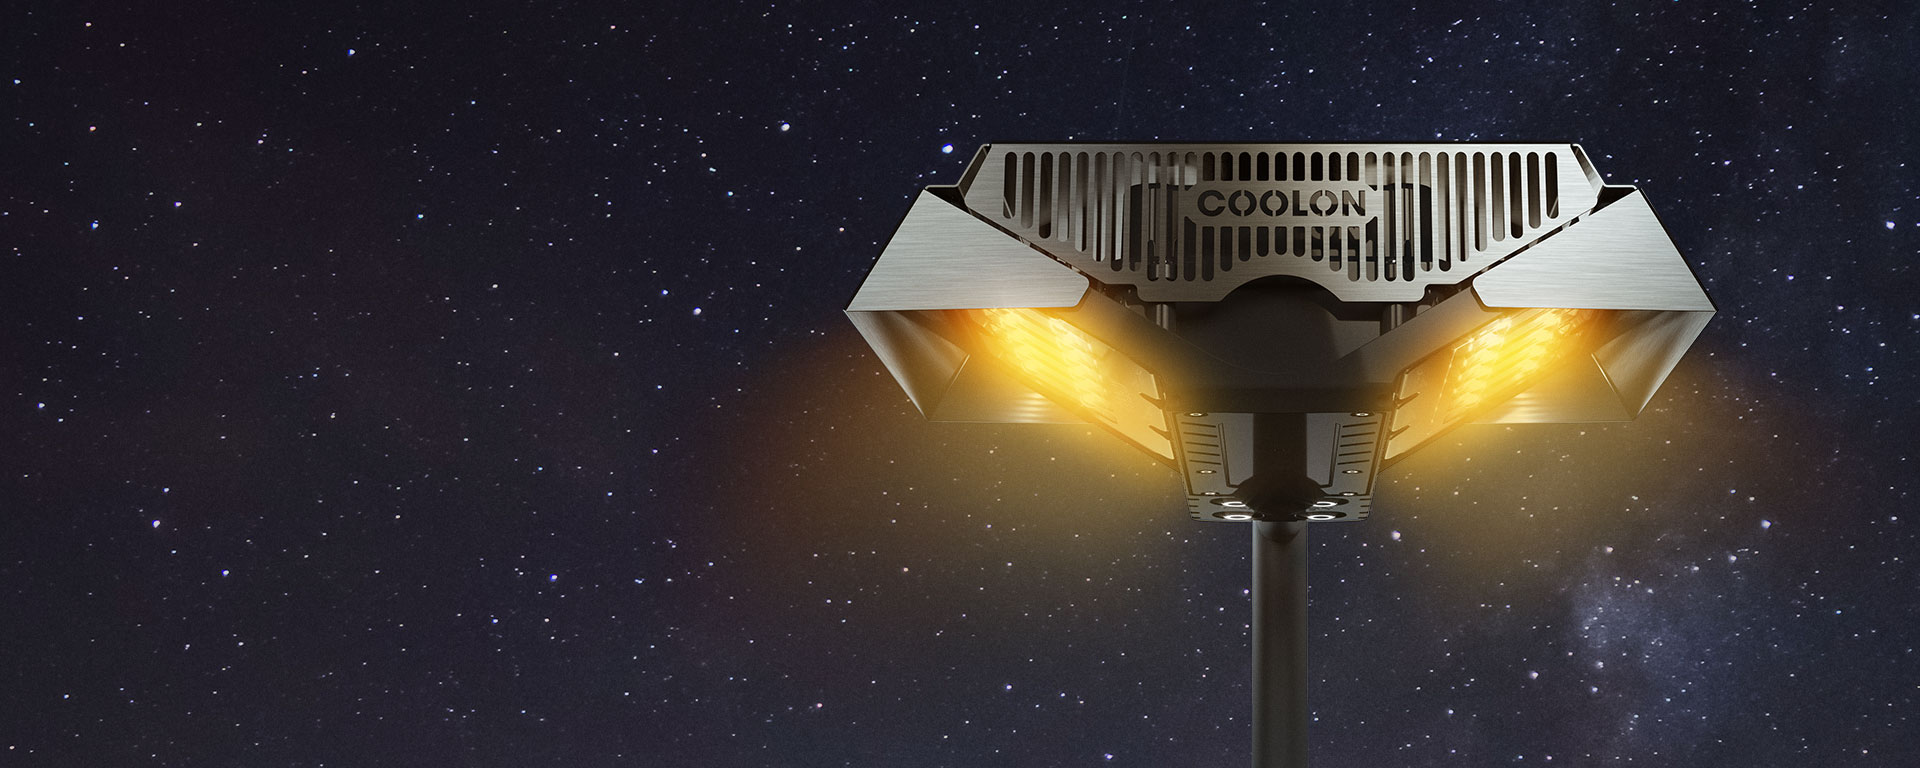 The DLK2 is available in Dark Sky compliant configuration that features a specially designed hood as well as fine tuned light specturm designed to control the effects of lightpollution.